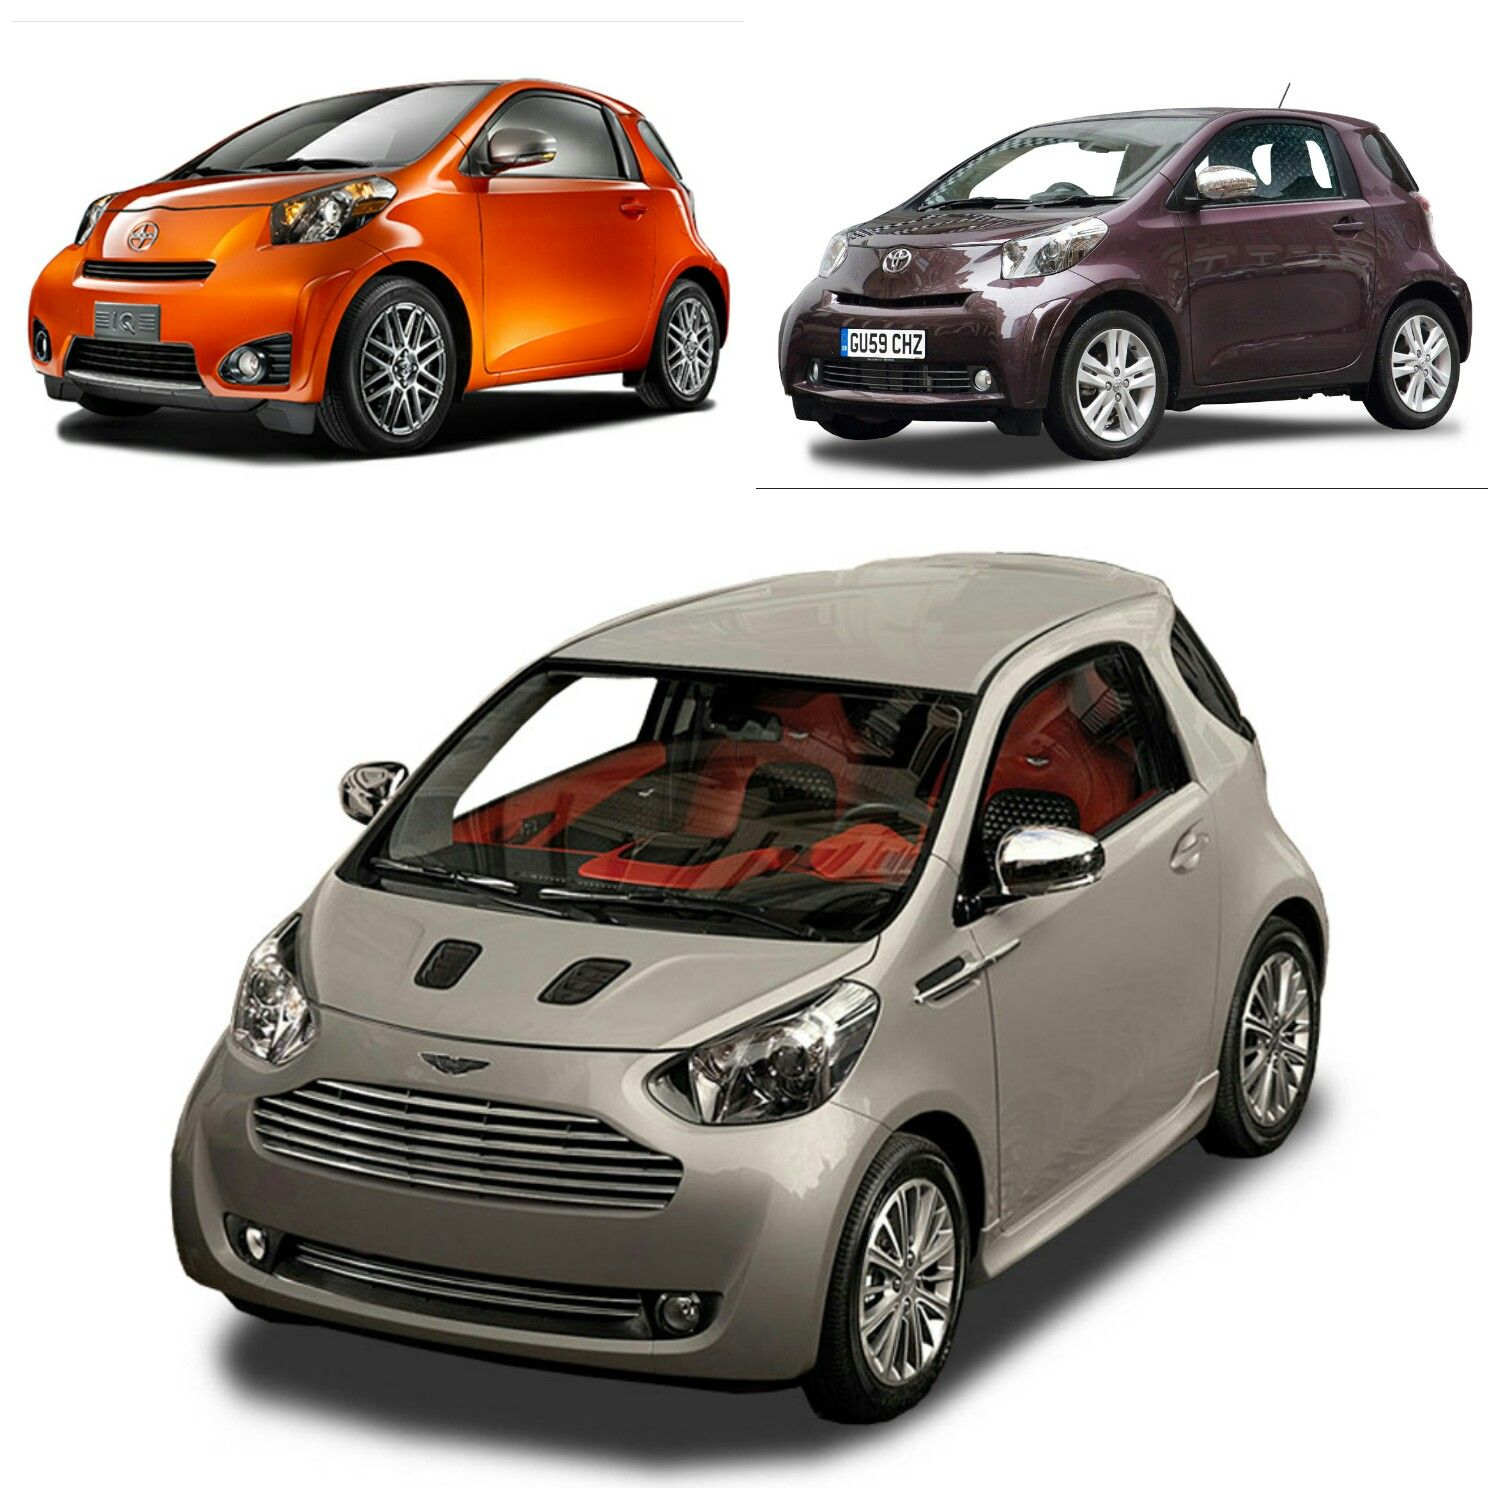 Worksheet. Scion iQ top left  Toyota iQ top right  Aston Martin Cygnet